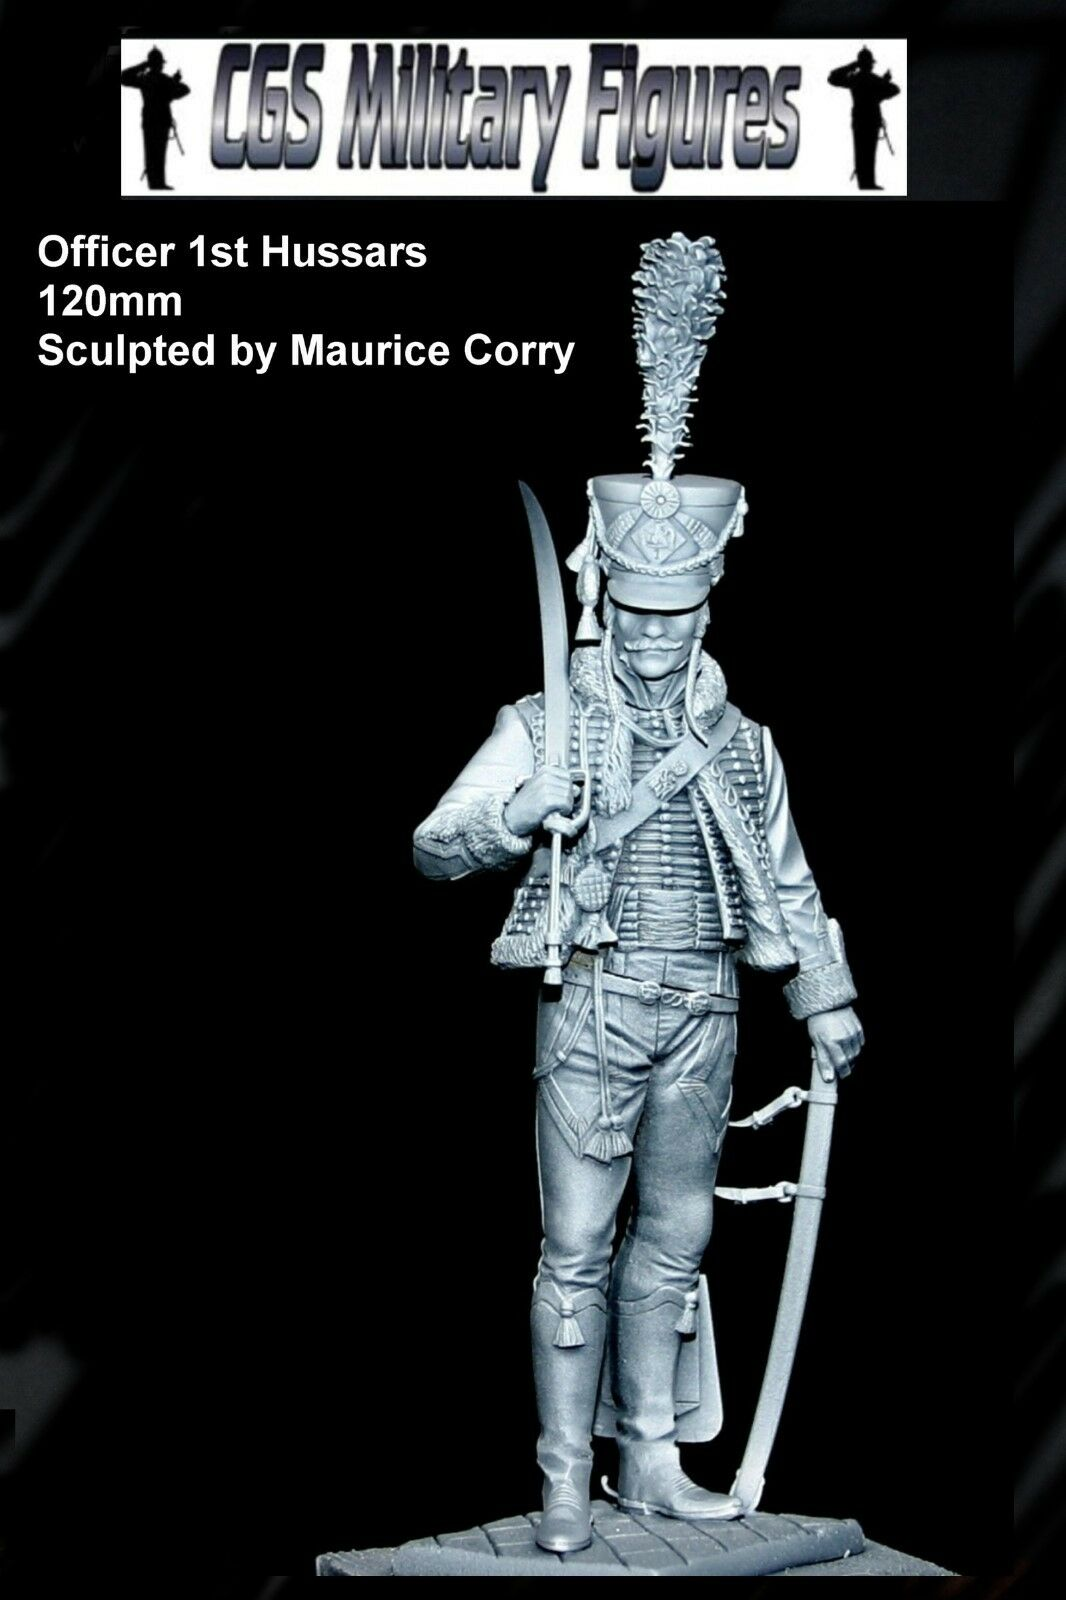 CGS Officer French Hussars 120mm Unpainted kit CORRY